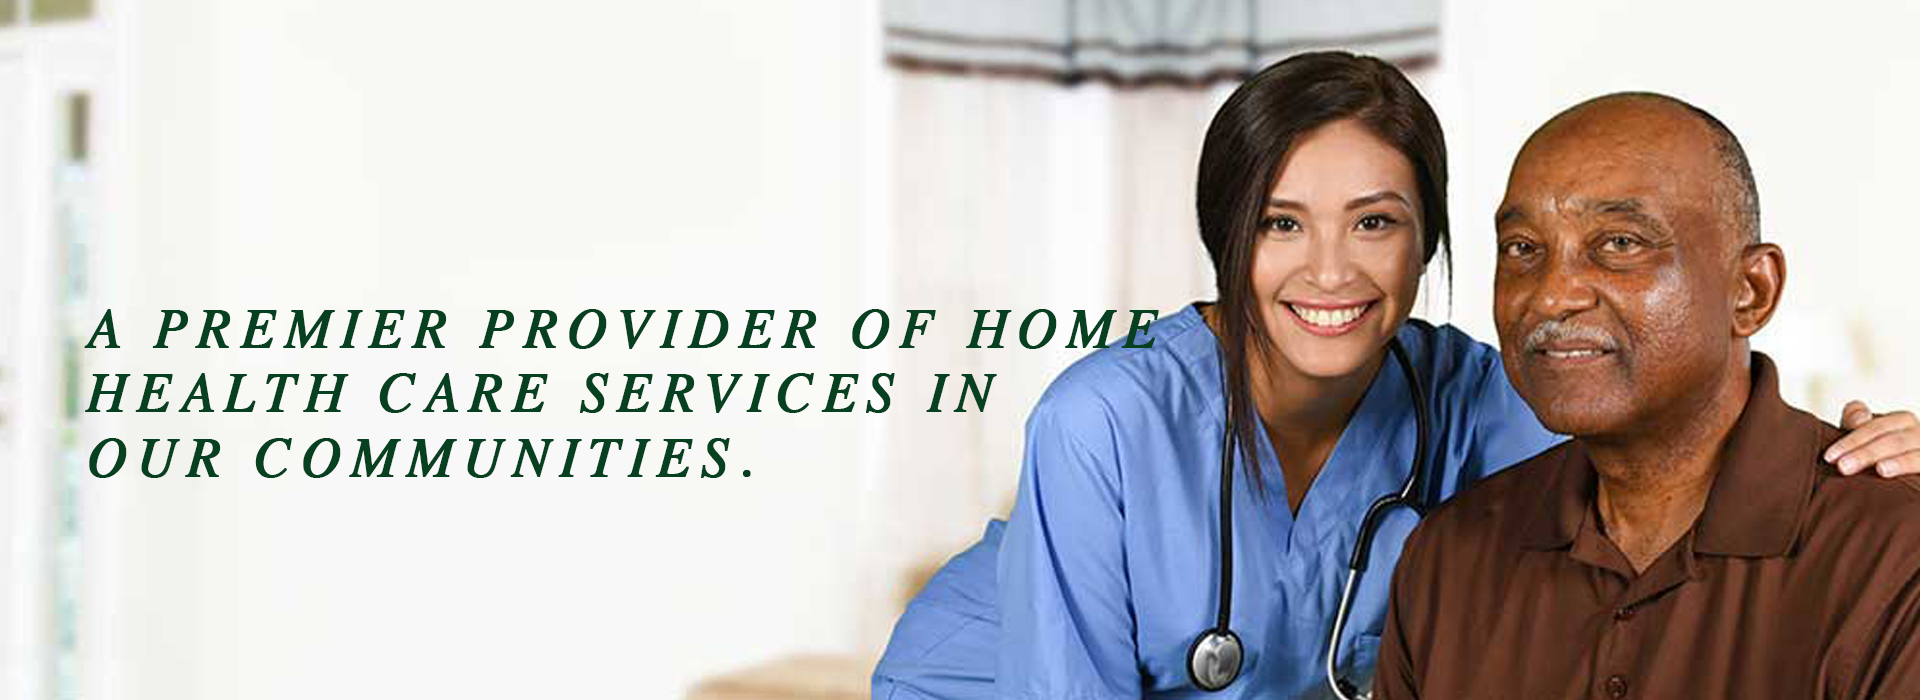 A Premier Provider of Home Health Care Services In Our Communities.